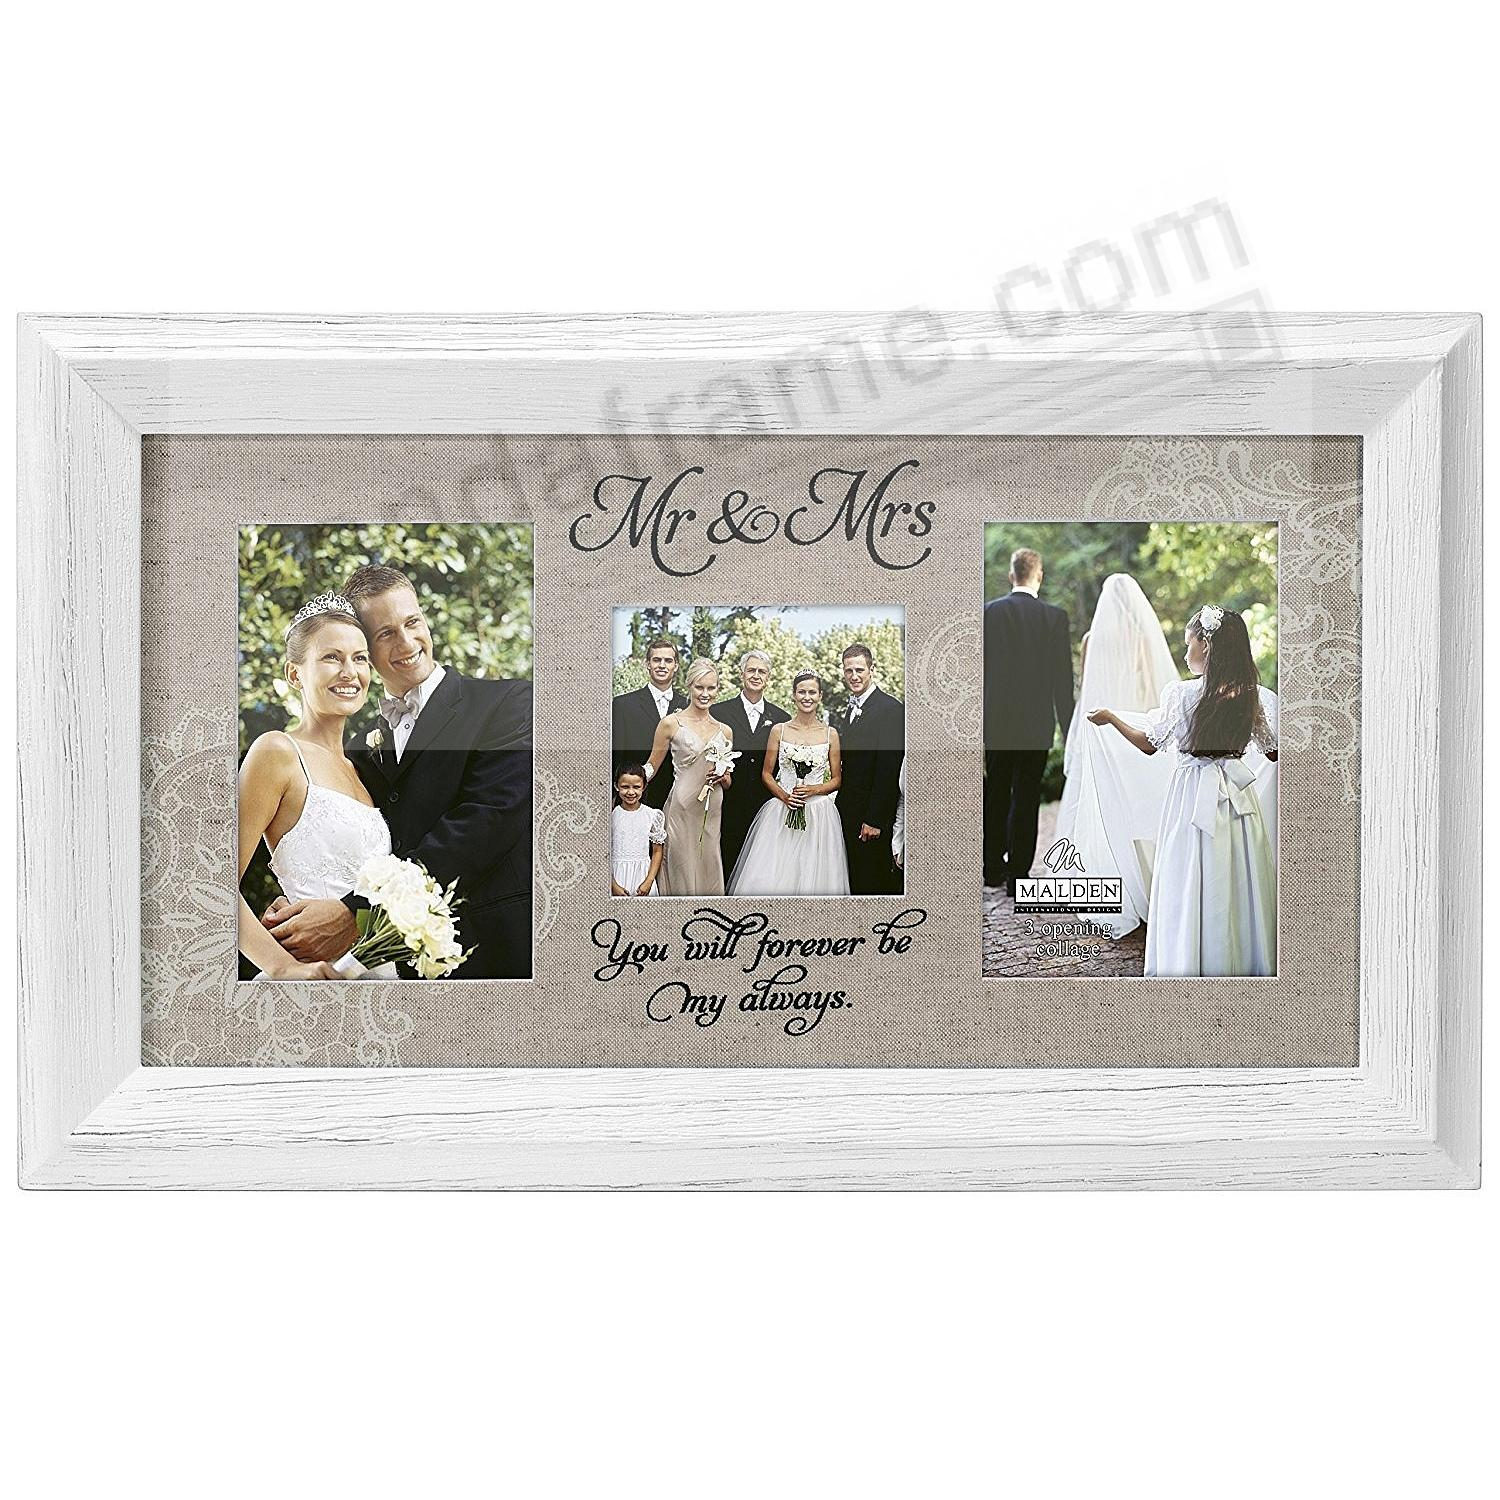 Mr. & Mrs Expressions frame by Malden®